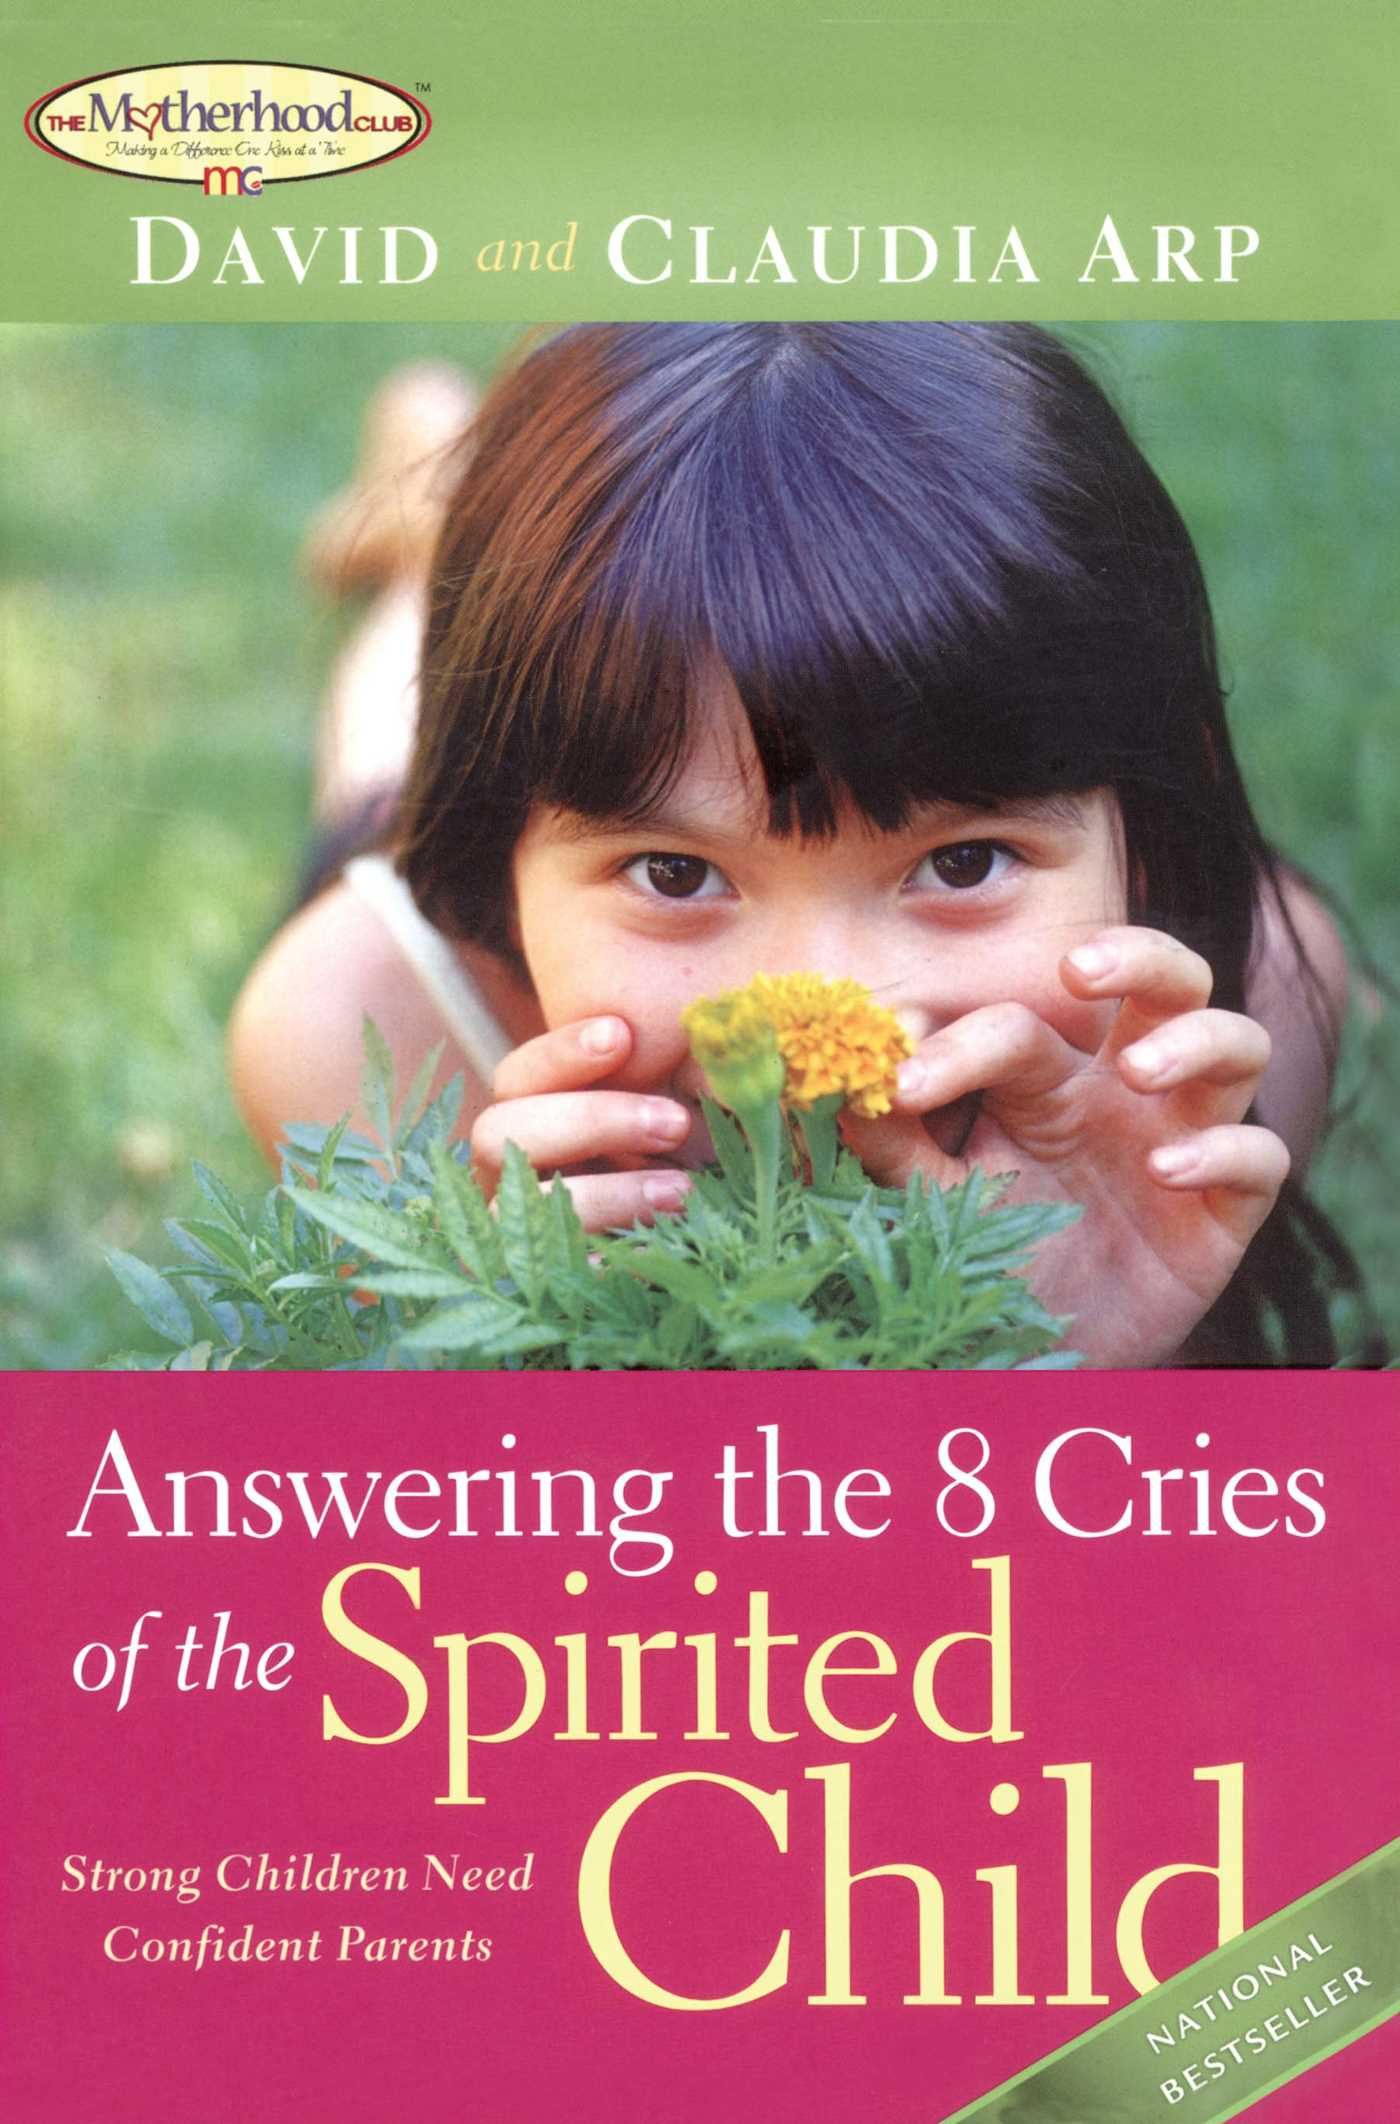 Answering-the-8-cries-of-the-spirited-child-9781439122754_hr